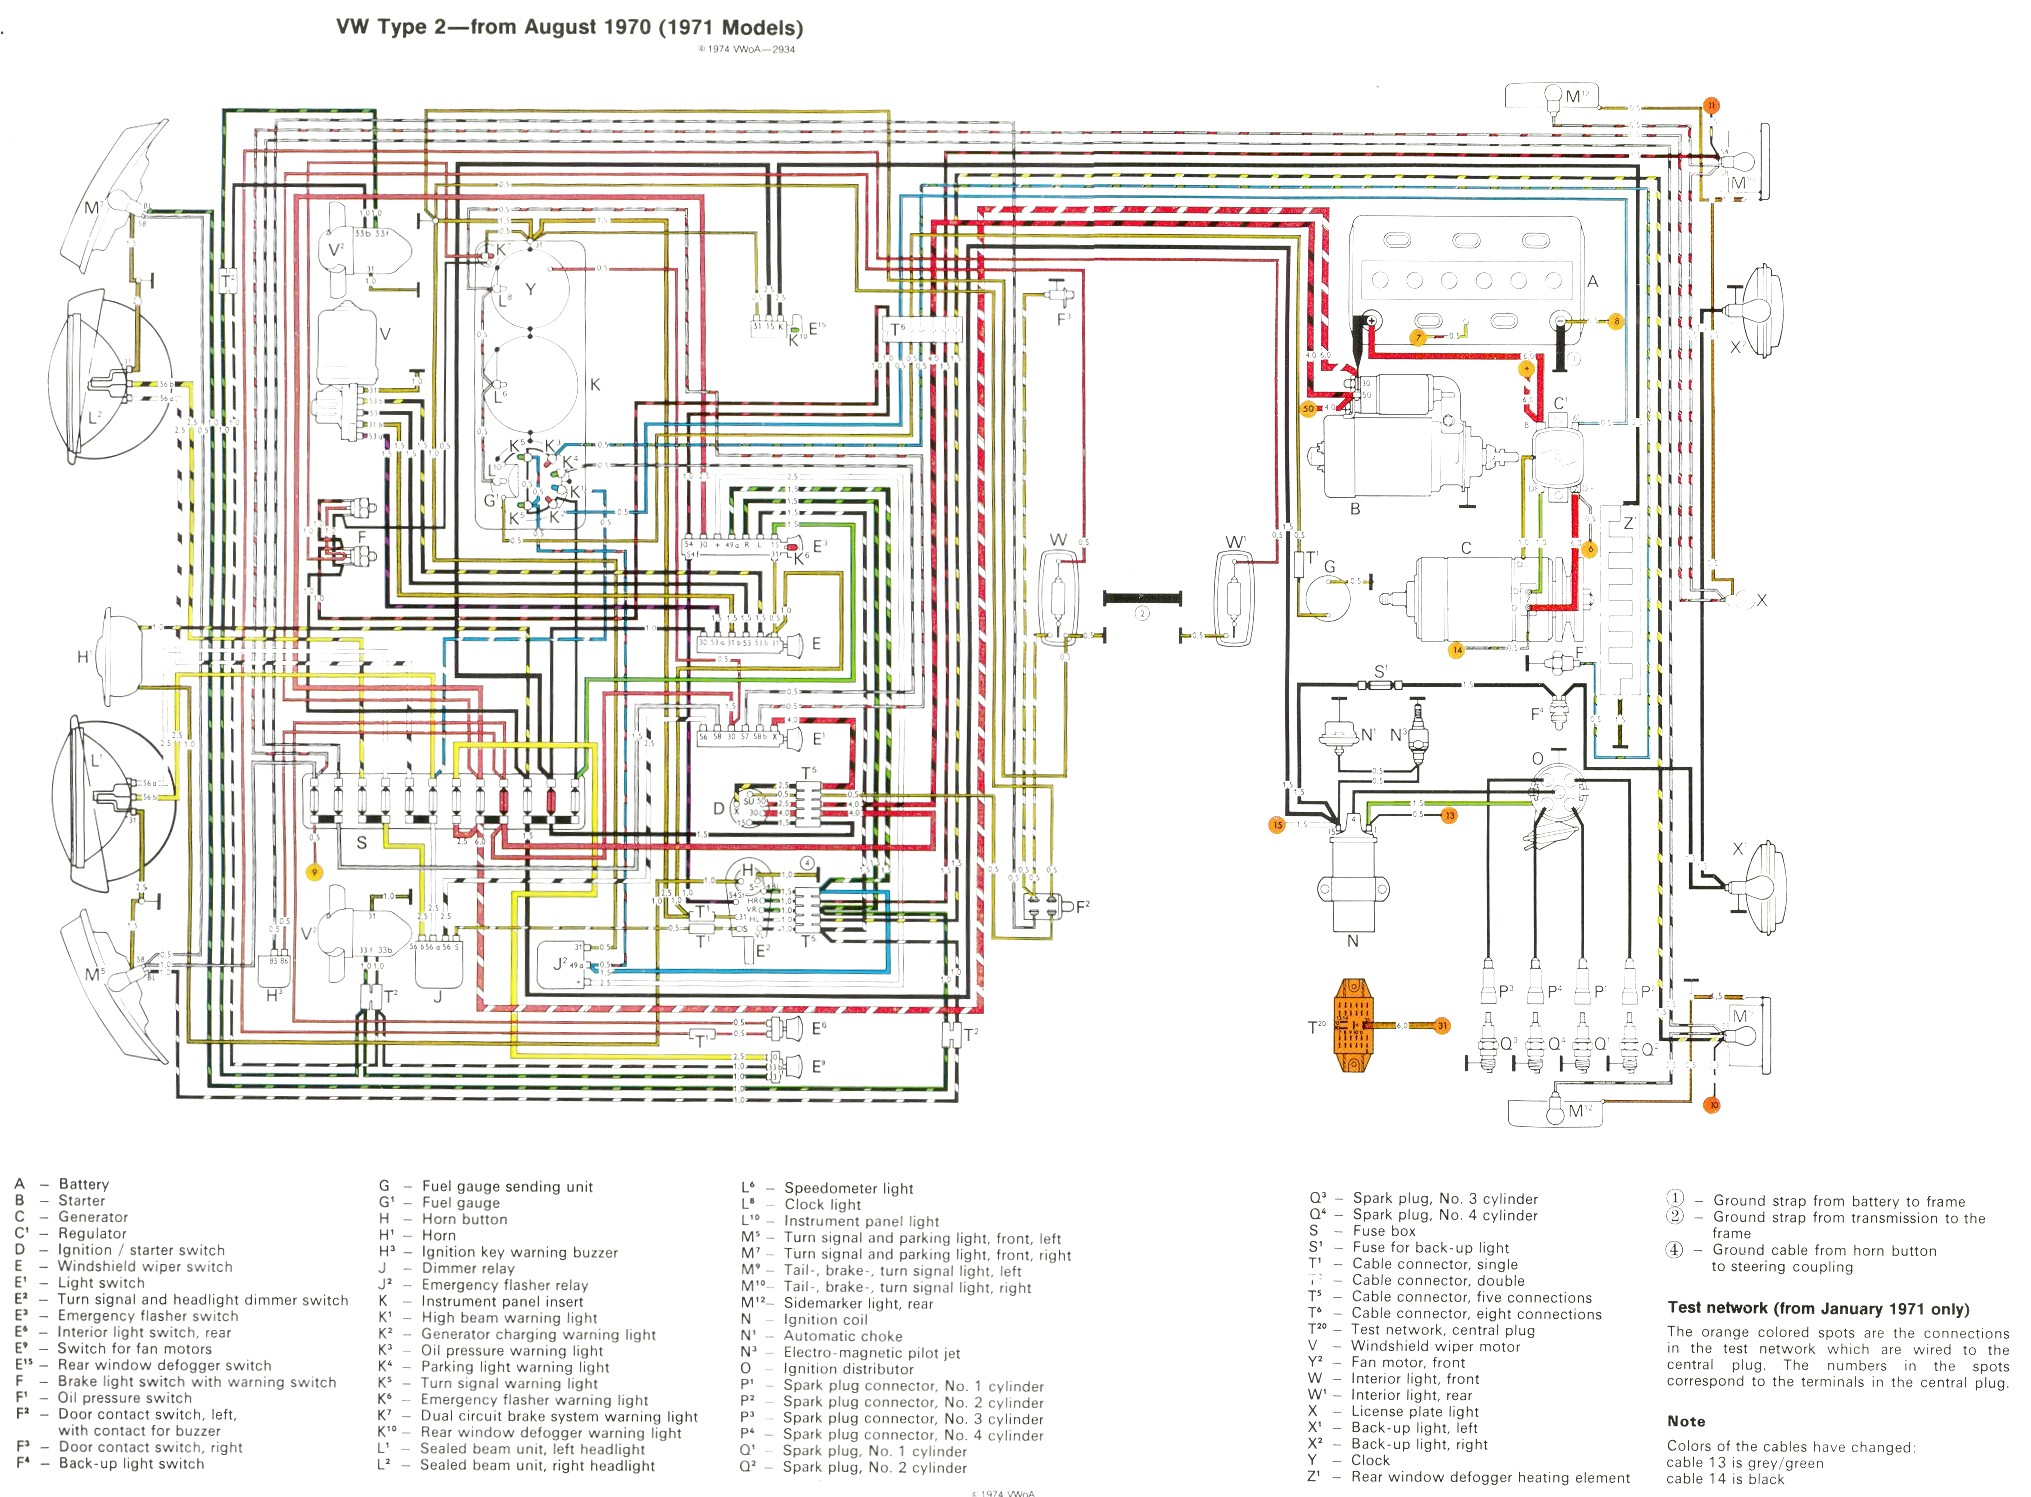 vw wiring diagrams rh volkspower nl Volkswagen Beetle Wiring Diagram  Volkswagen 2002 Beetle Wiring Diagram